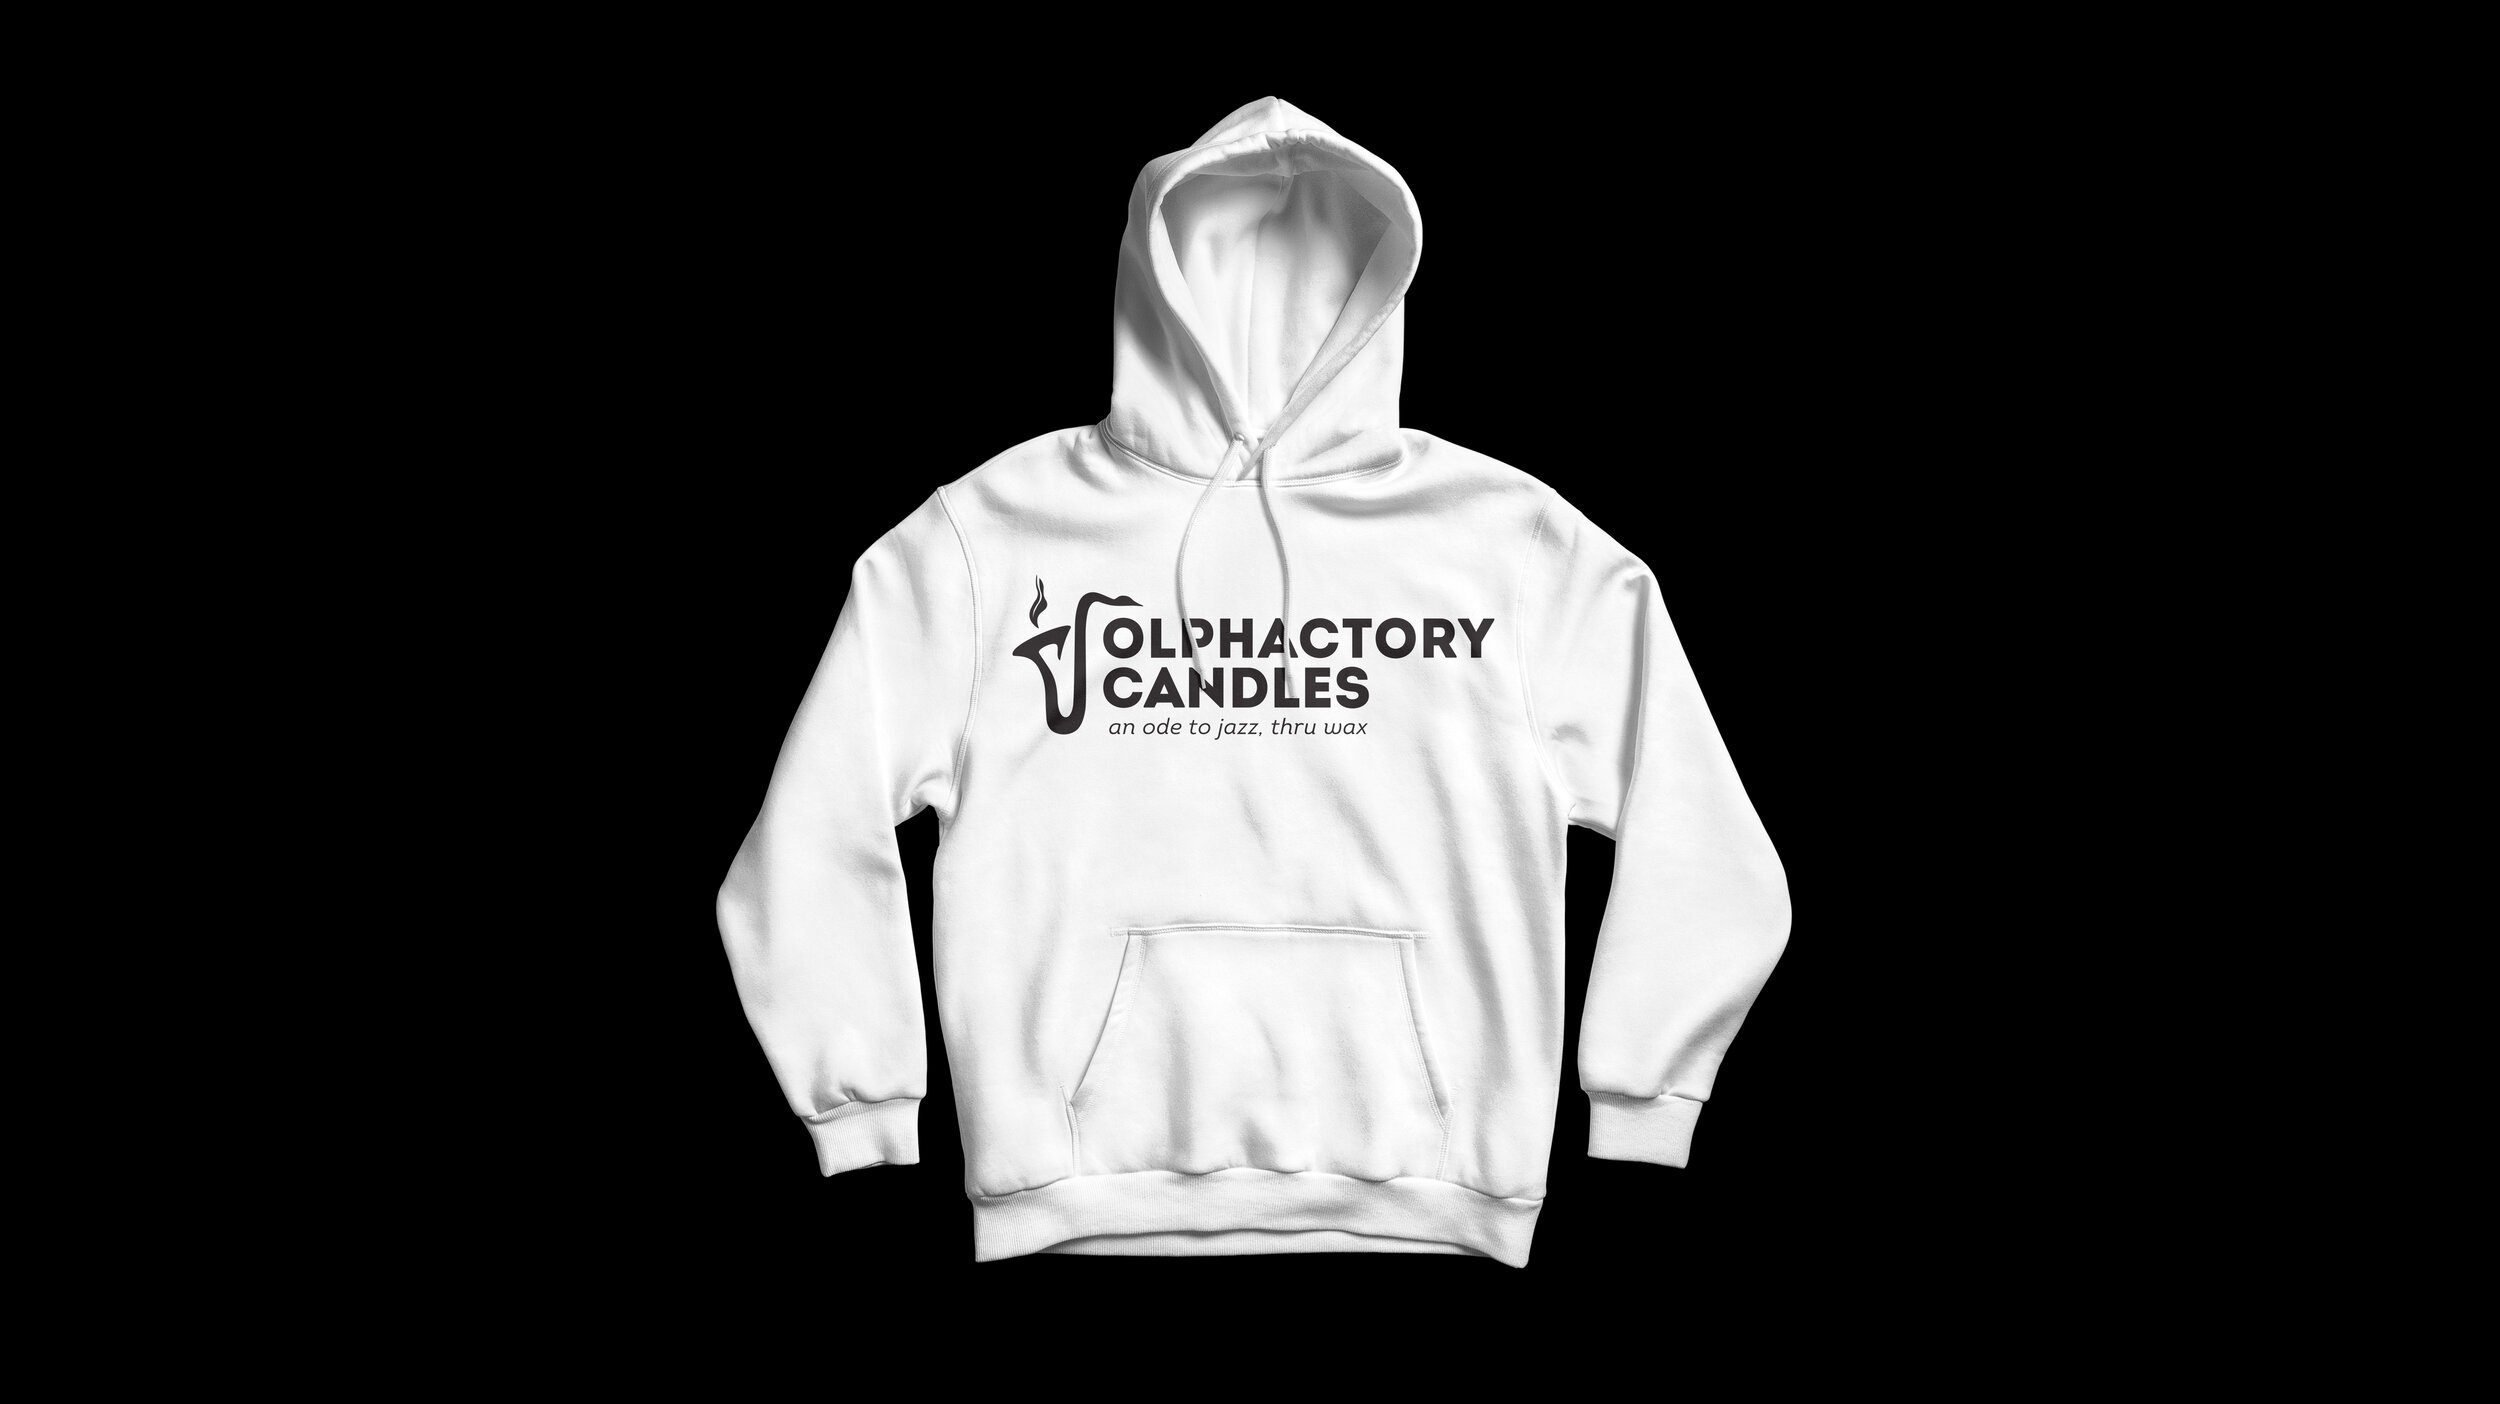 A white hoodie with the Olphactory Candle logo in black on a black background.